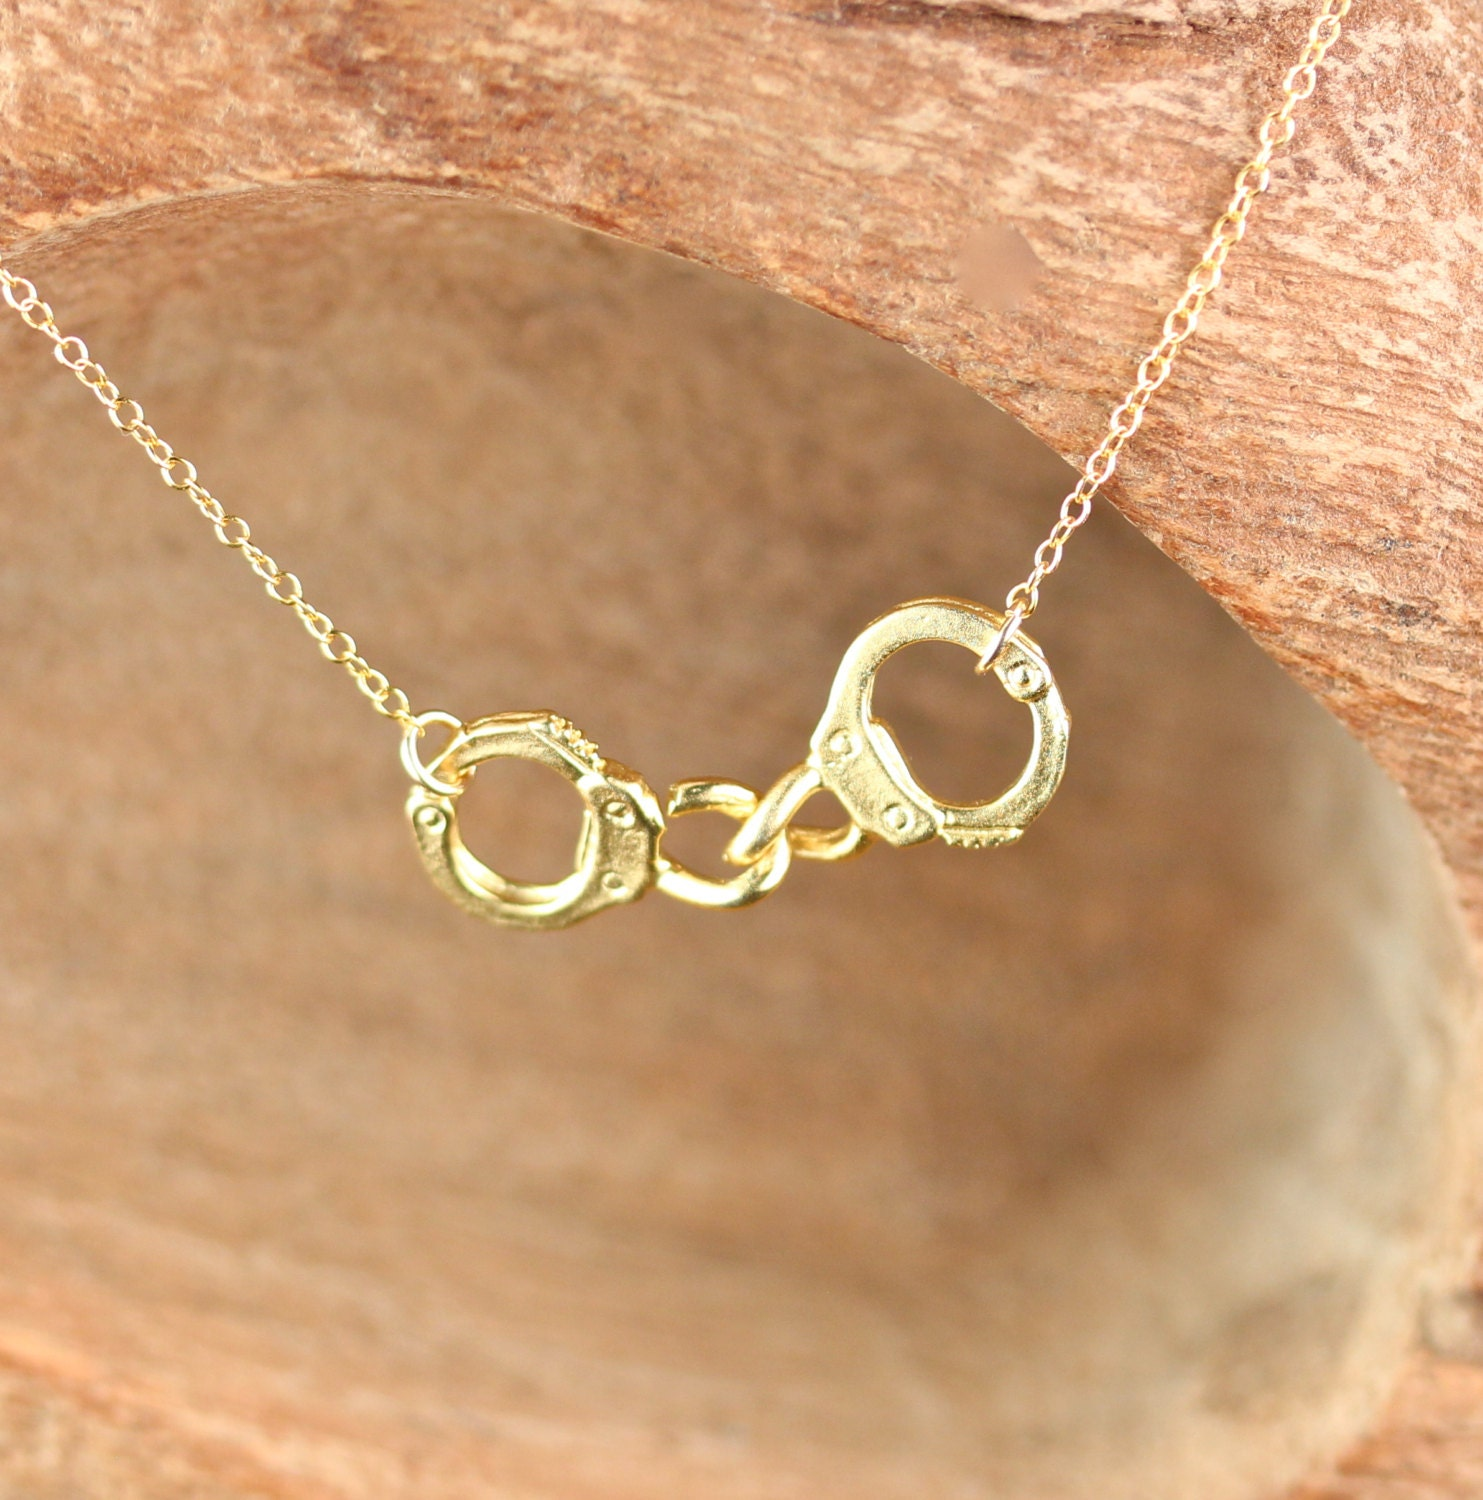 Handcuff Necklace Gold: Partners In Crime